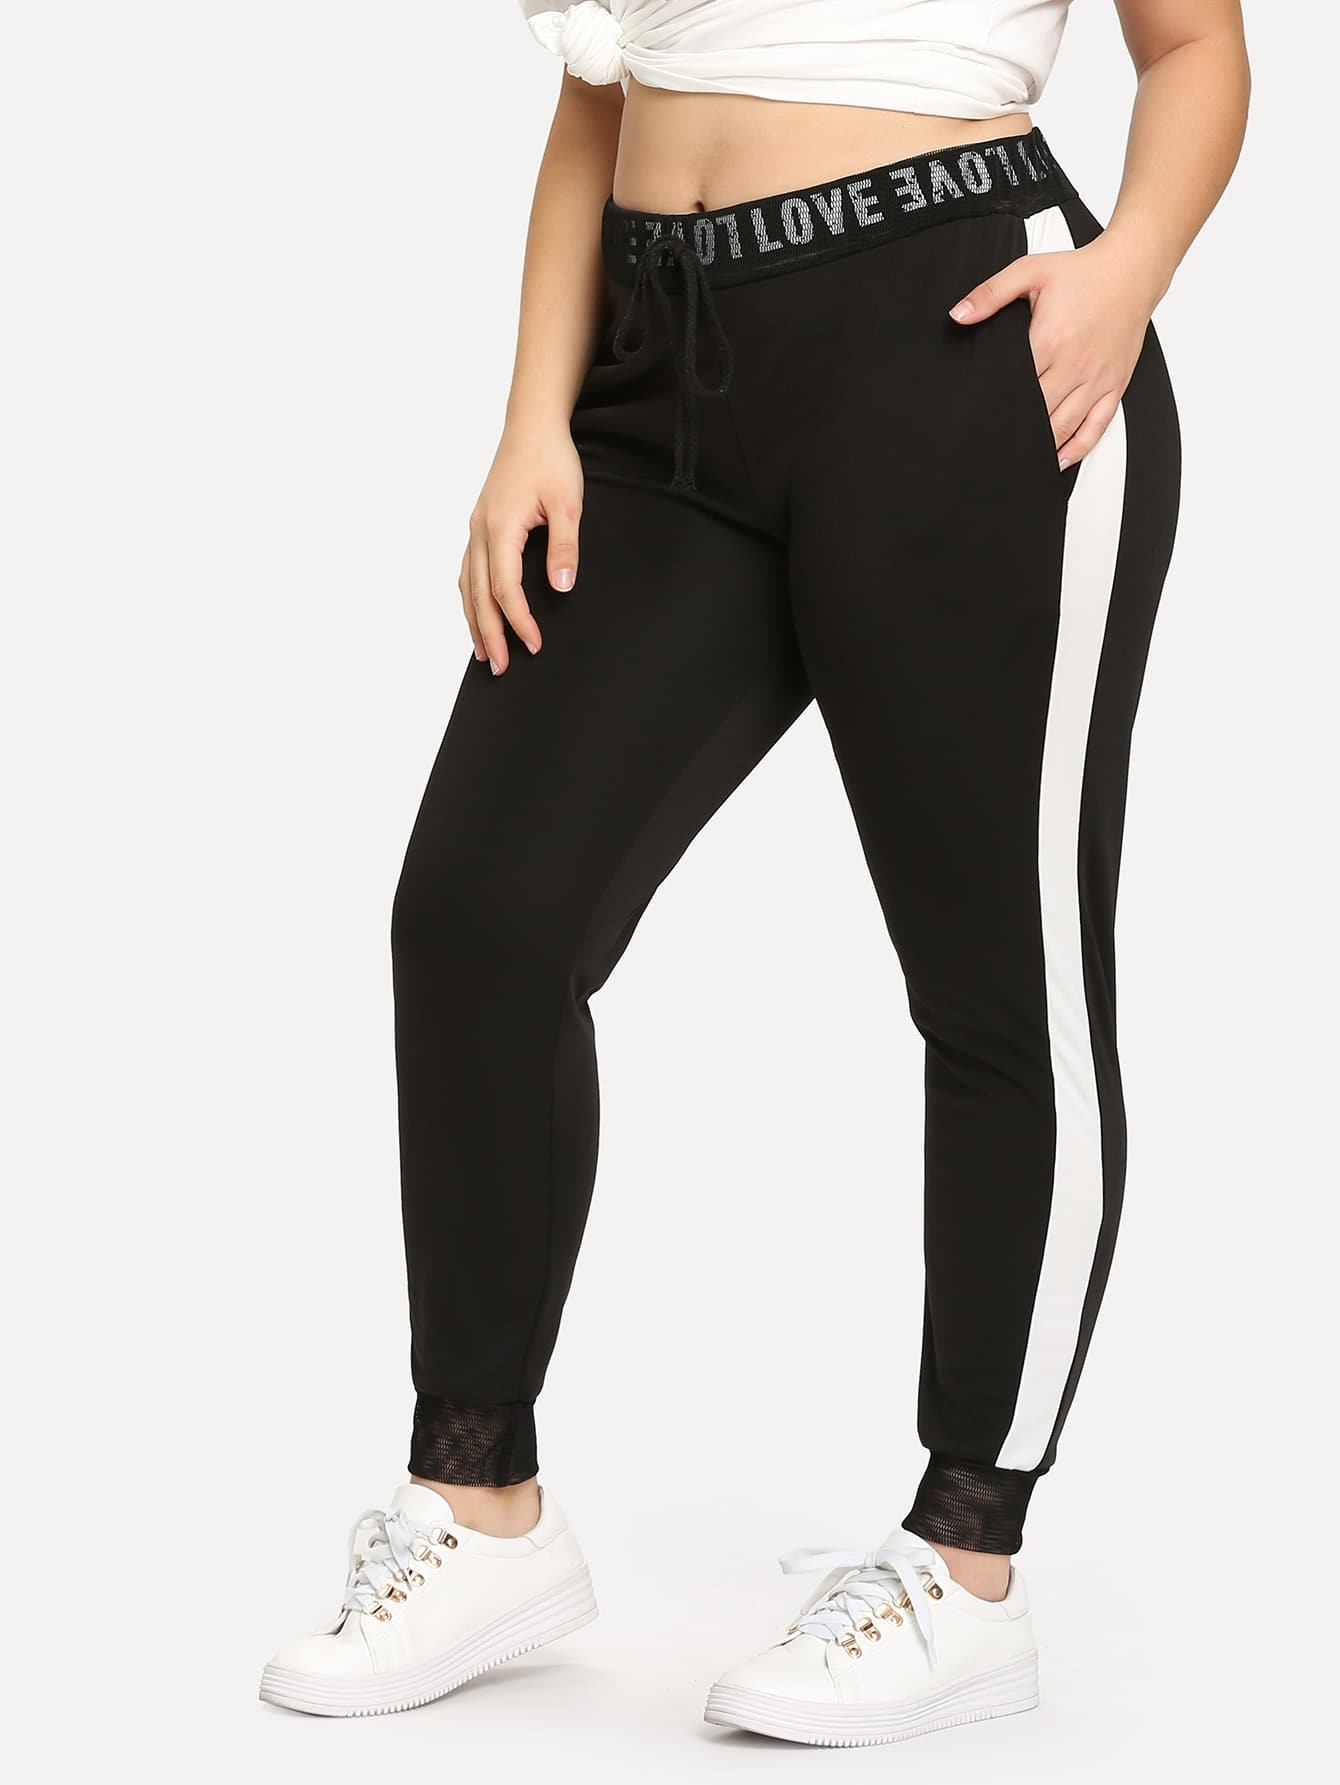 Contrast Tape Side Sweatpants contrast striped side sweatpants